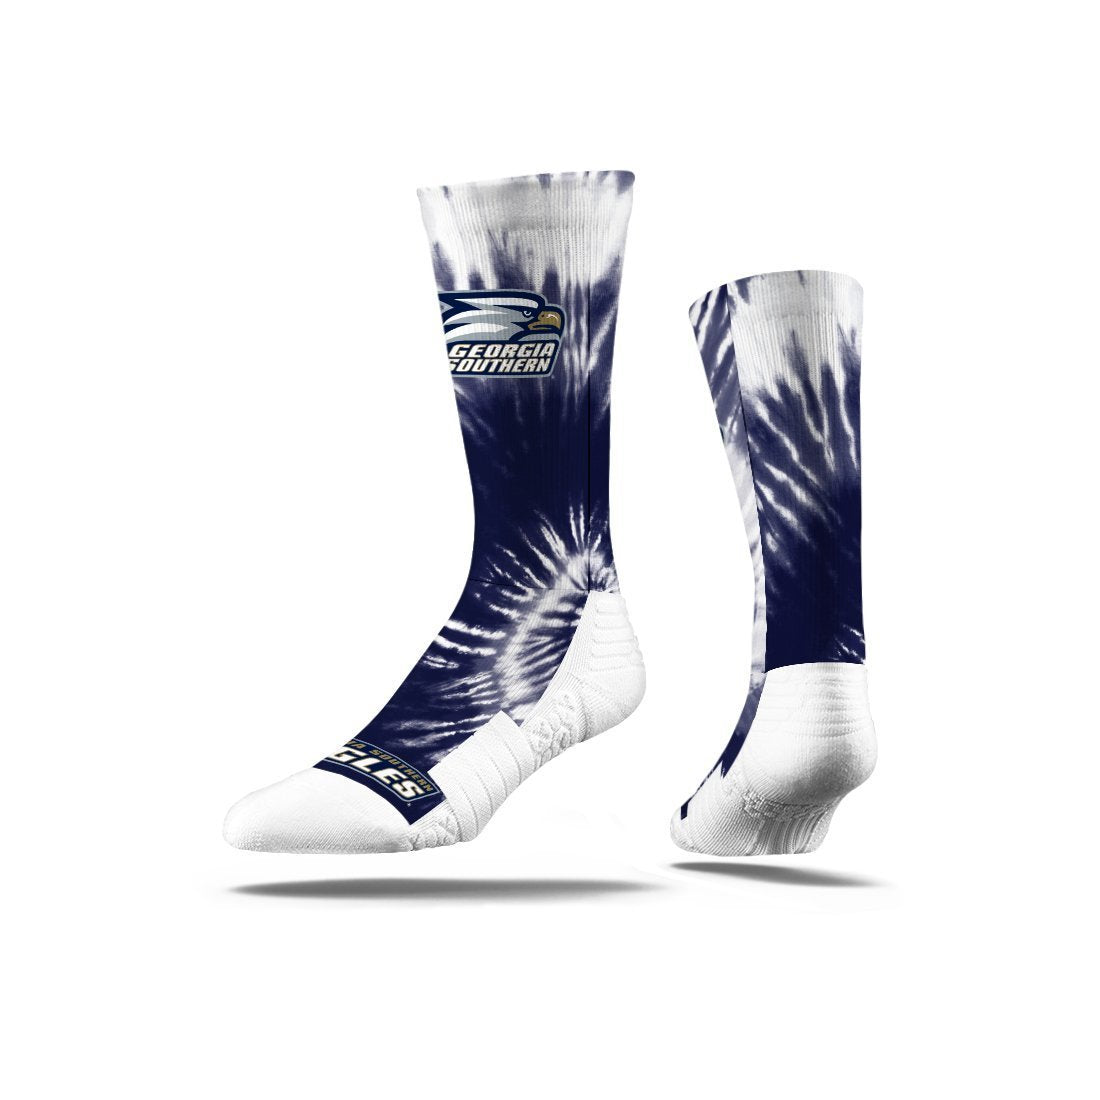 Dress Sock Crew Premium - Tie Dye Pattern